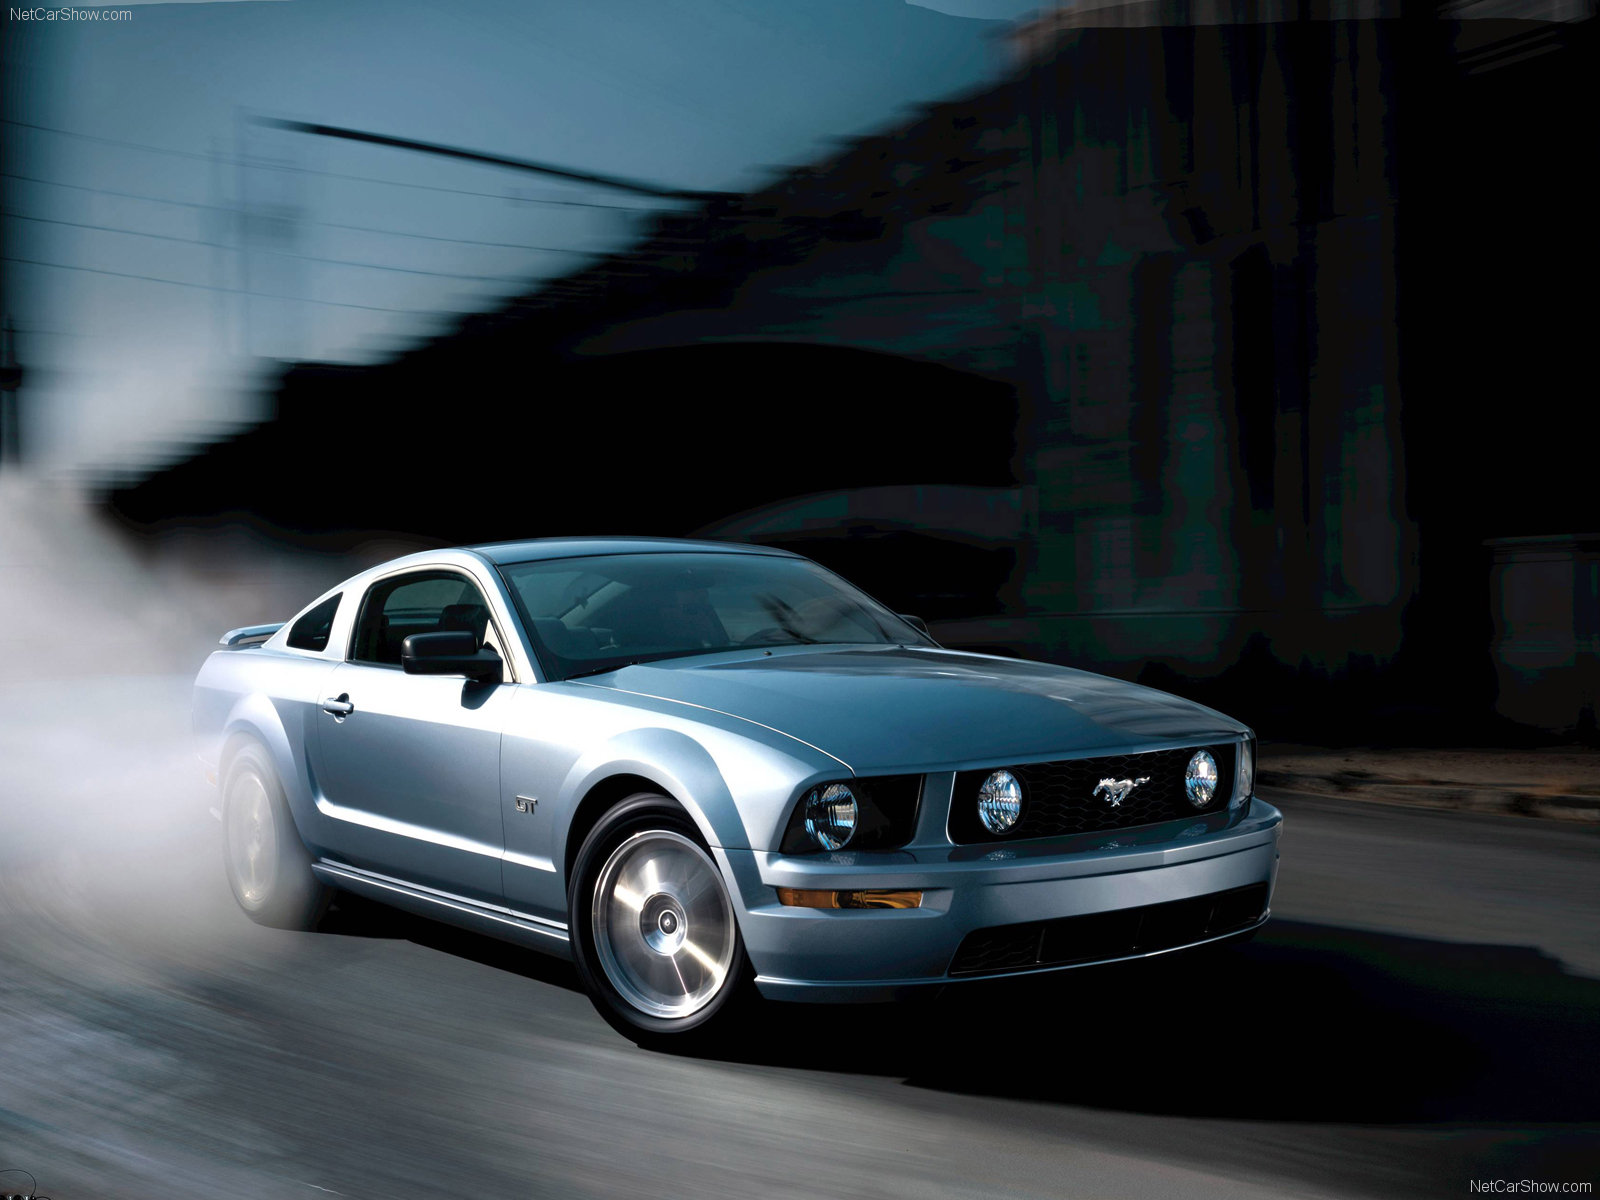 Ford Mustang HD Wallpaper Set 4 1600x1200